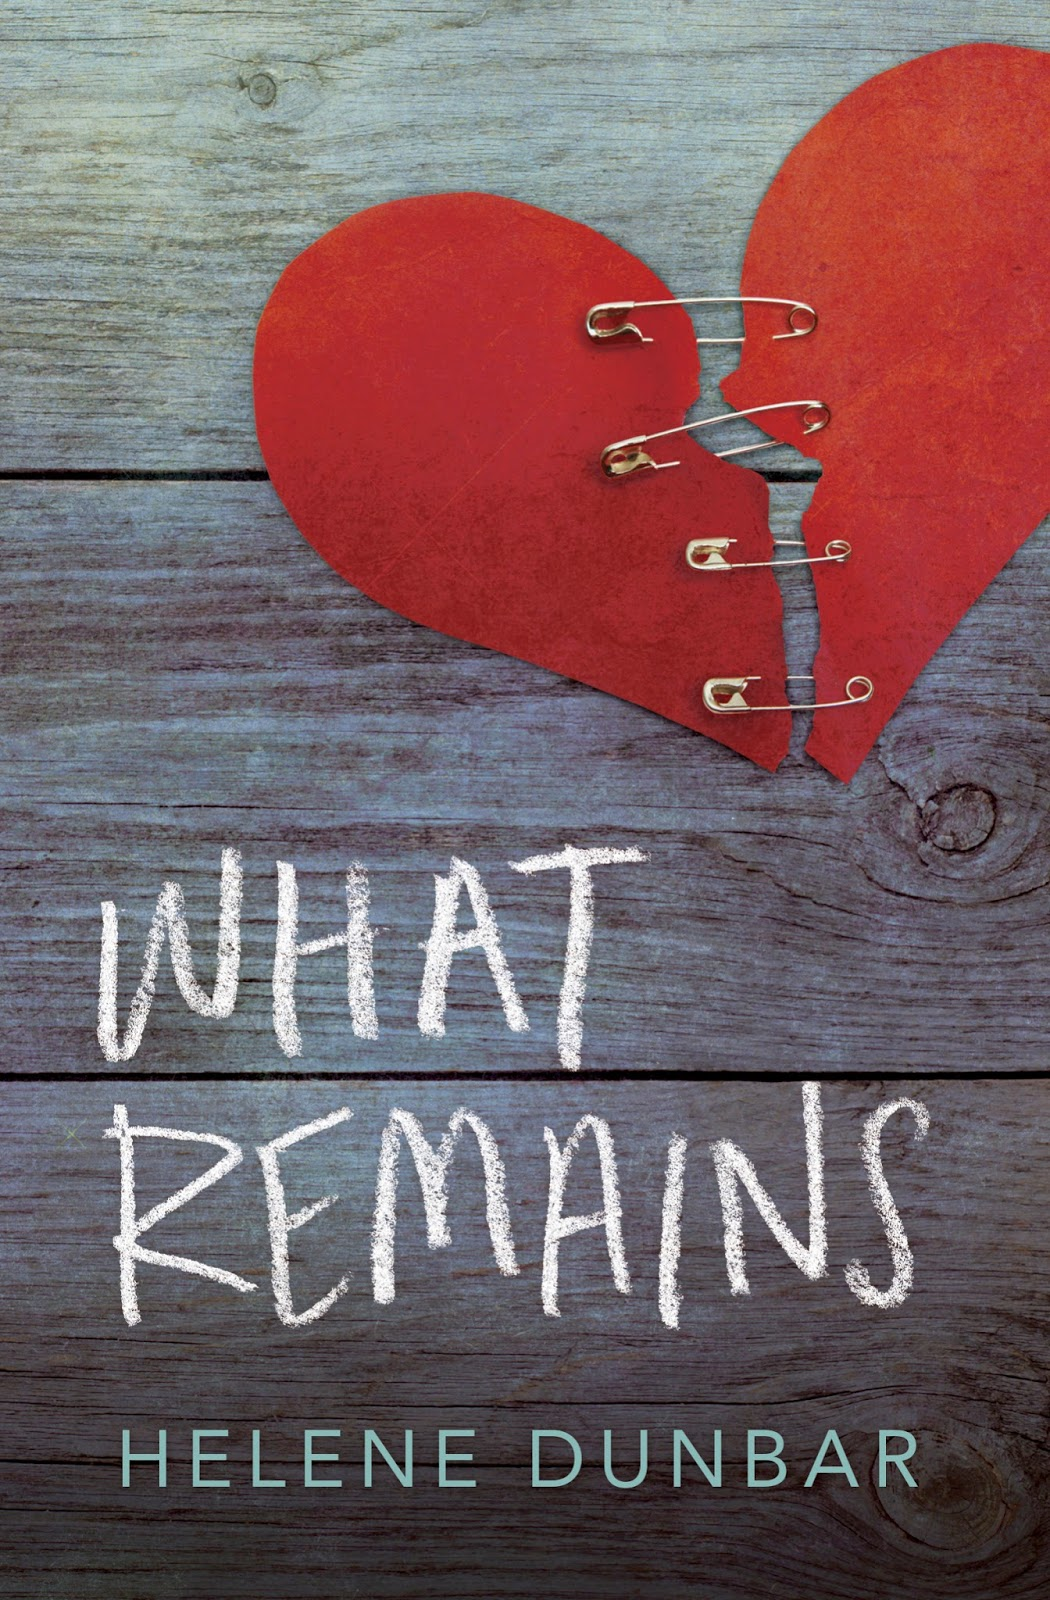 http://www.amazon.com/What-Remains-Helene-Dunbar/dp/0738744301/